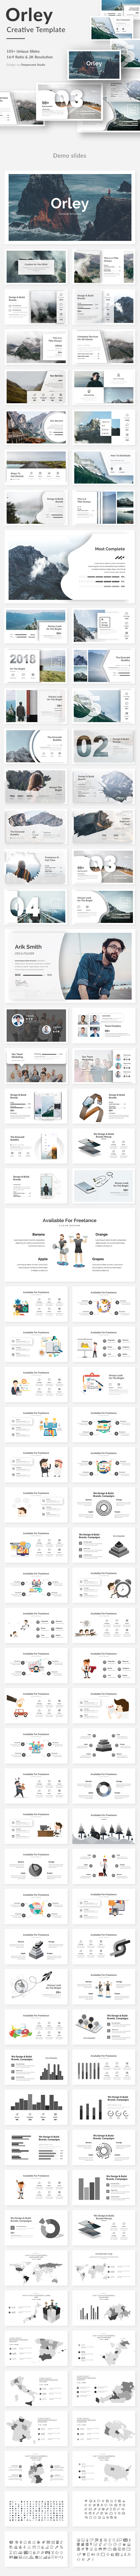 Orley Creative Powerpoint Template - Creative PowerPoint Templates